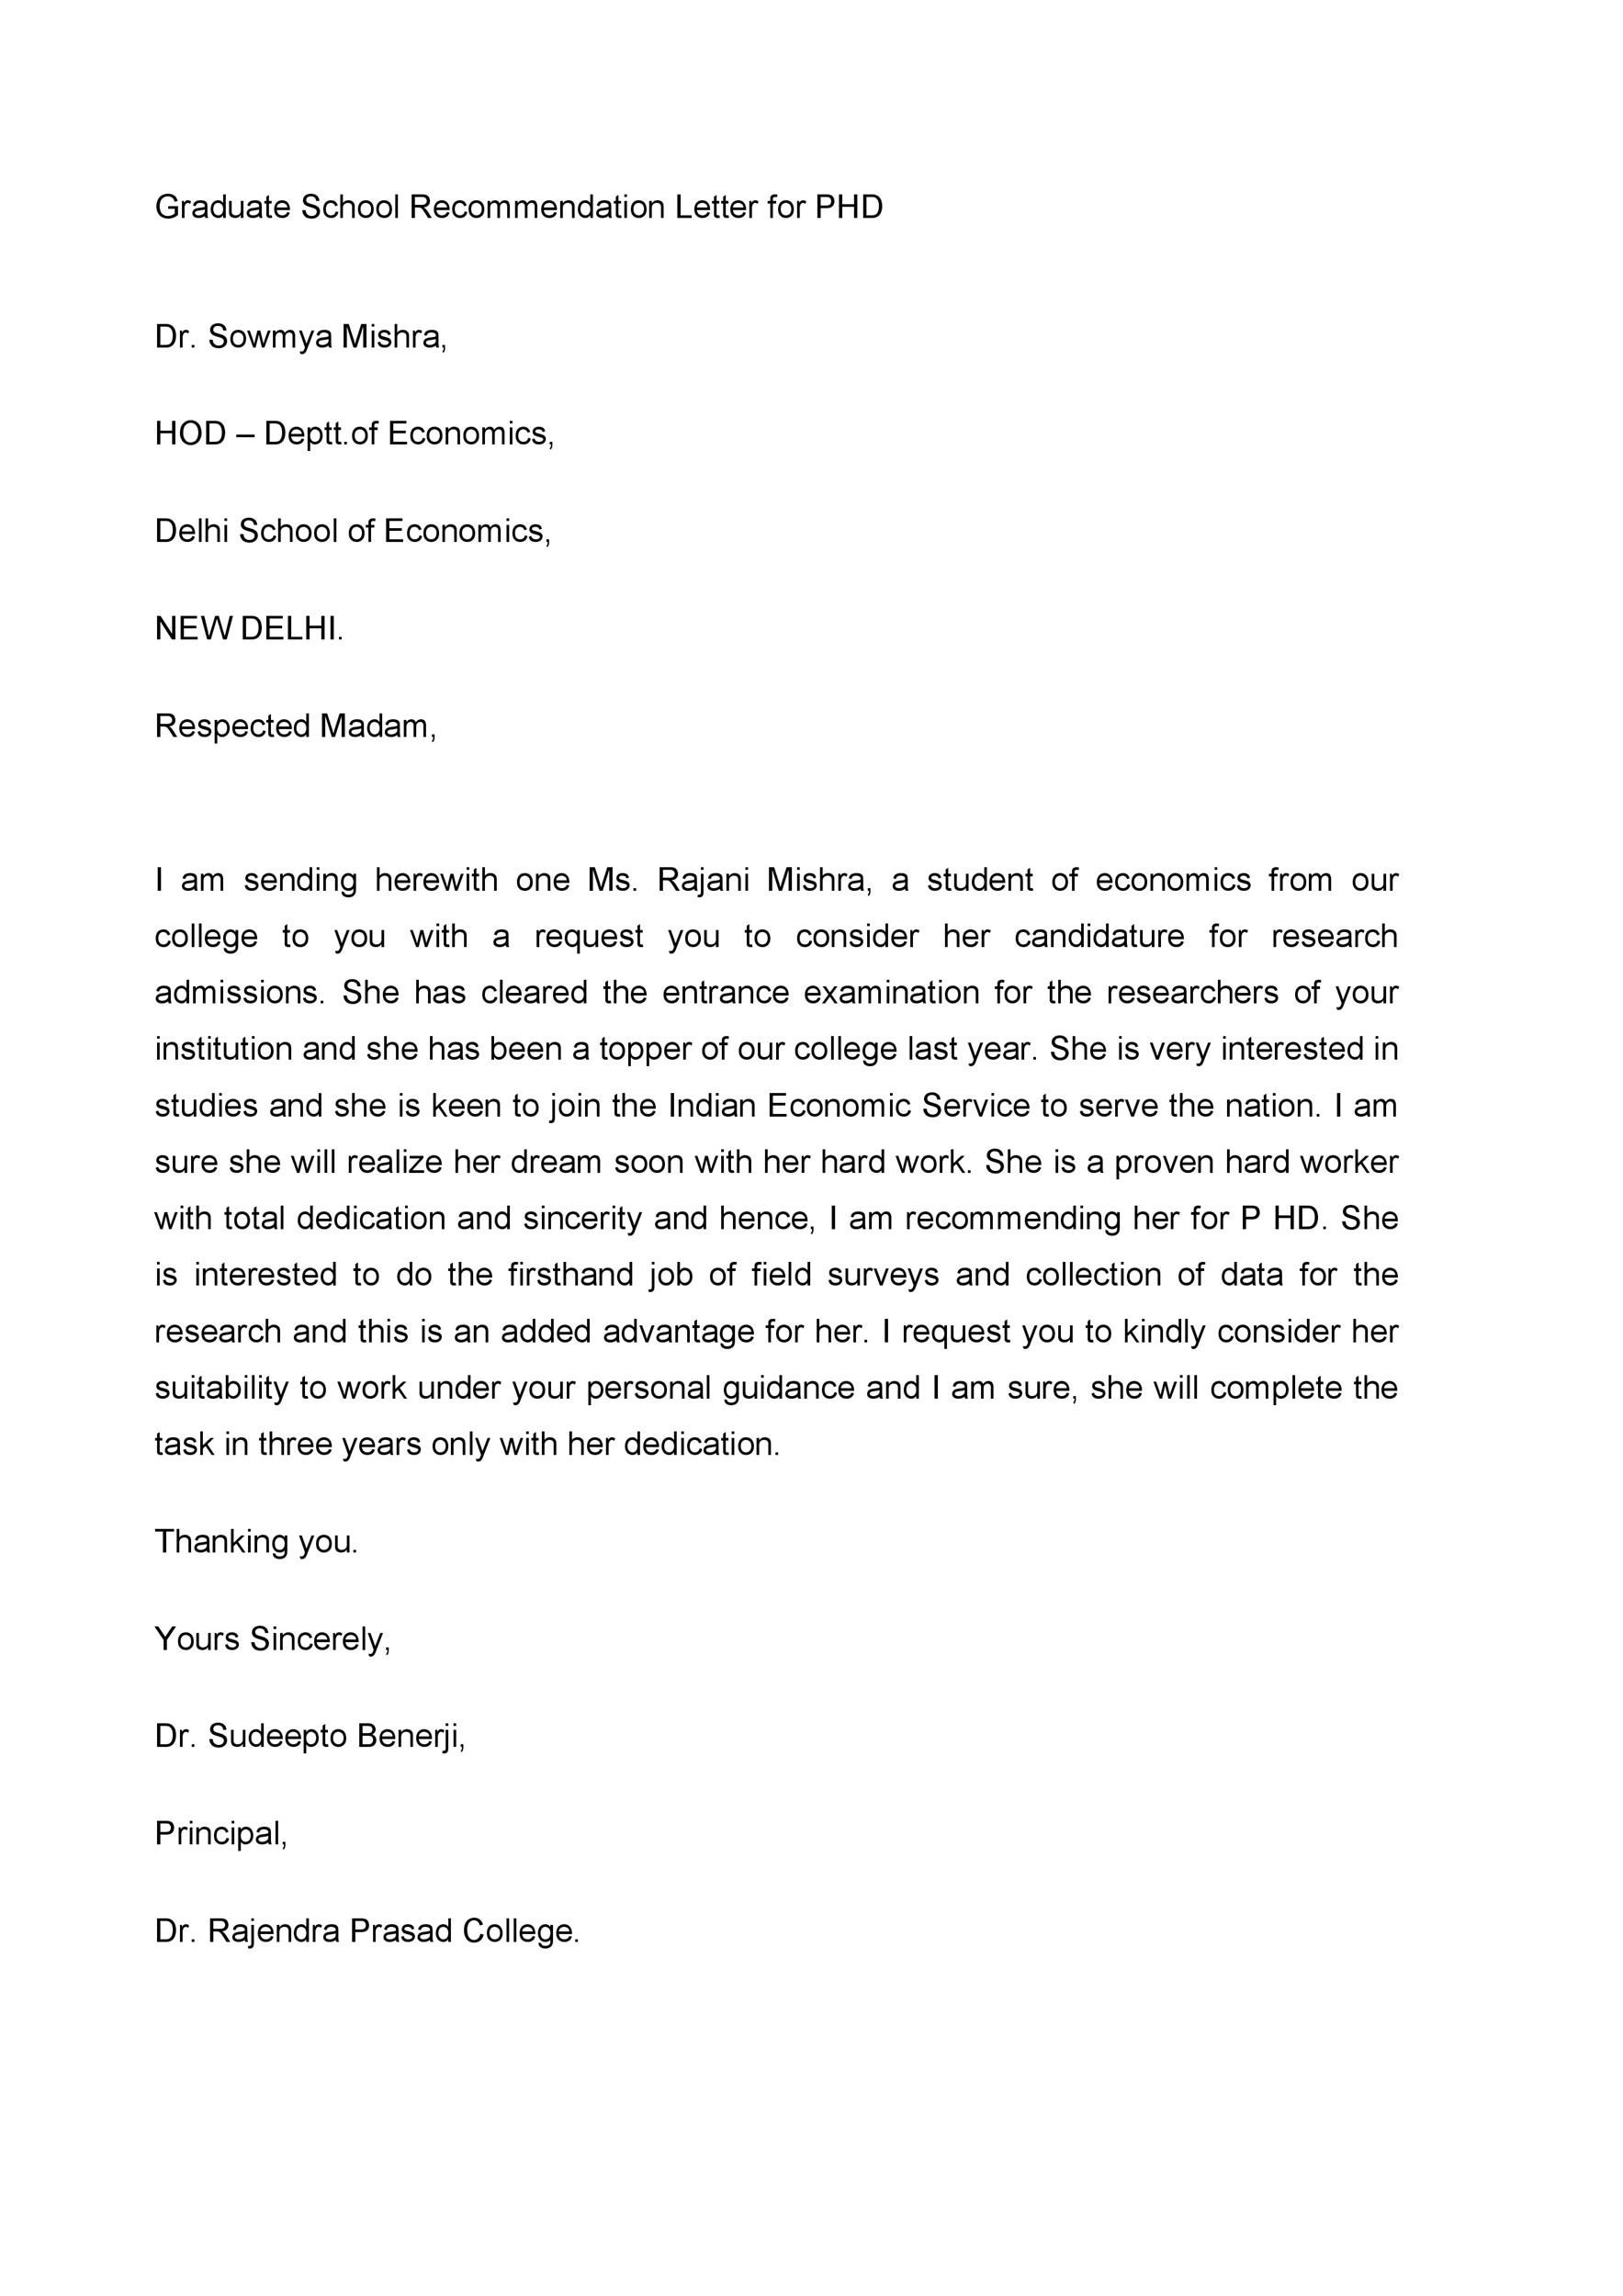 007 Stunning Letter Of Recommendation Template For College Student Photo  Sample From ProfessorFull